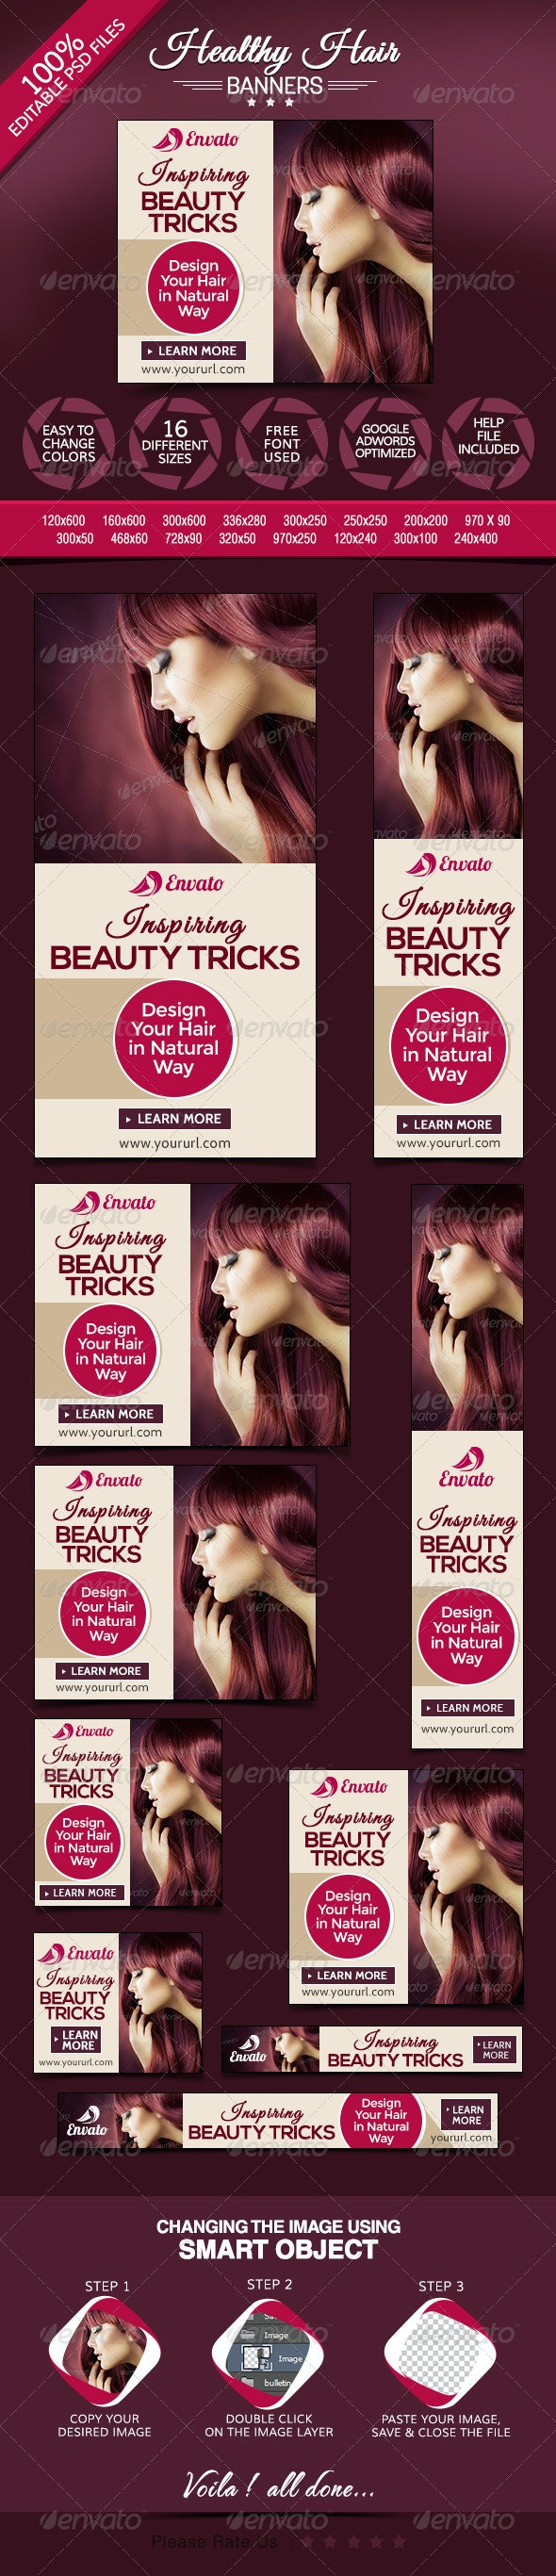 Banners for Hair Products